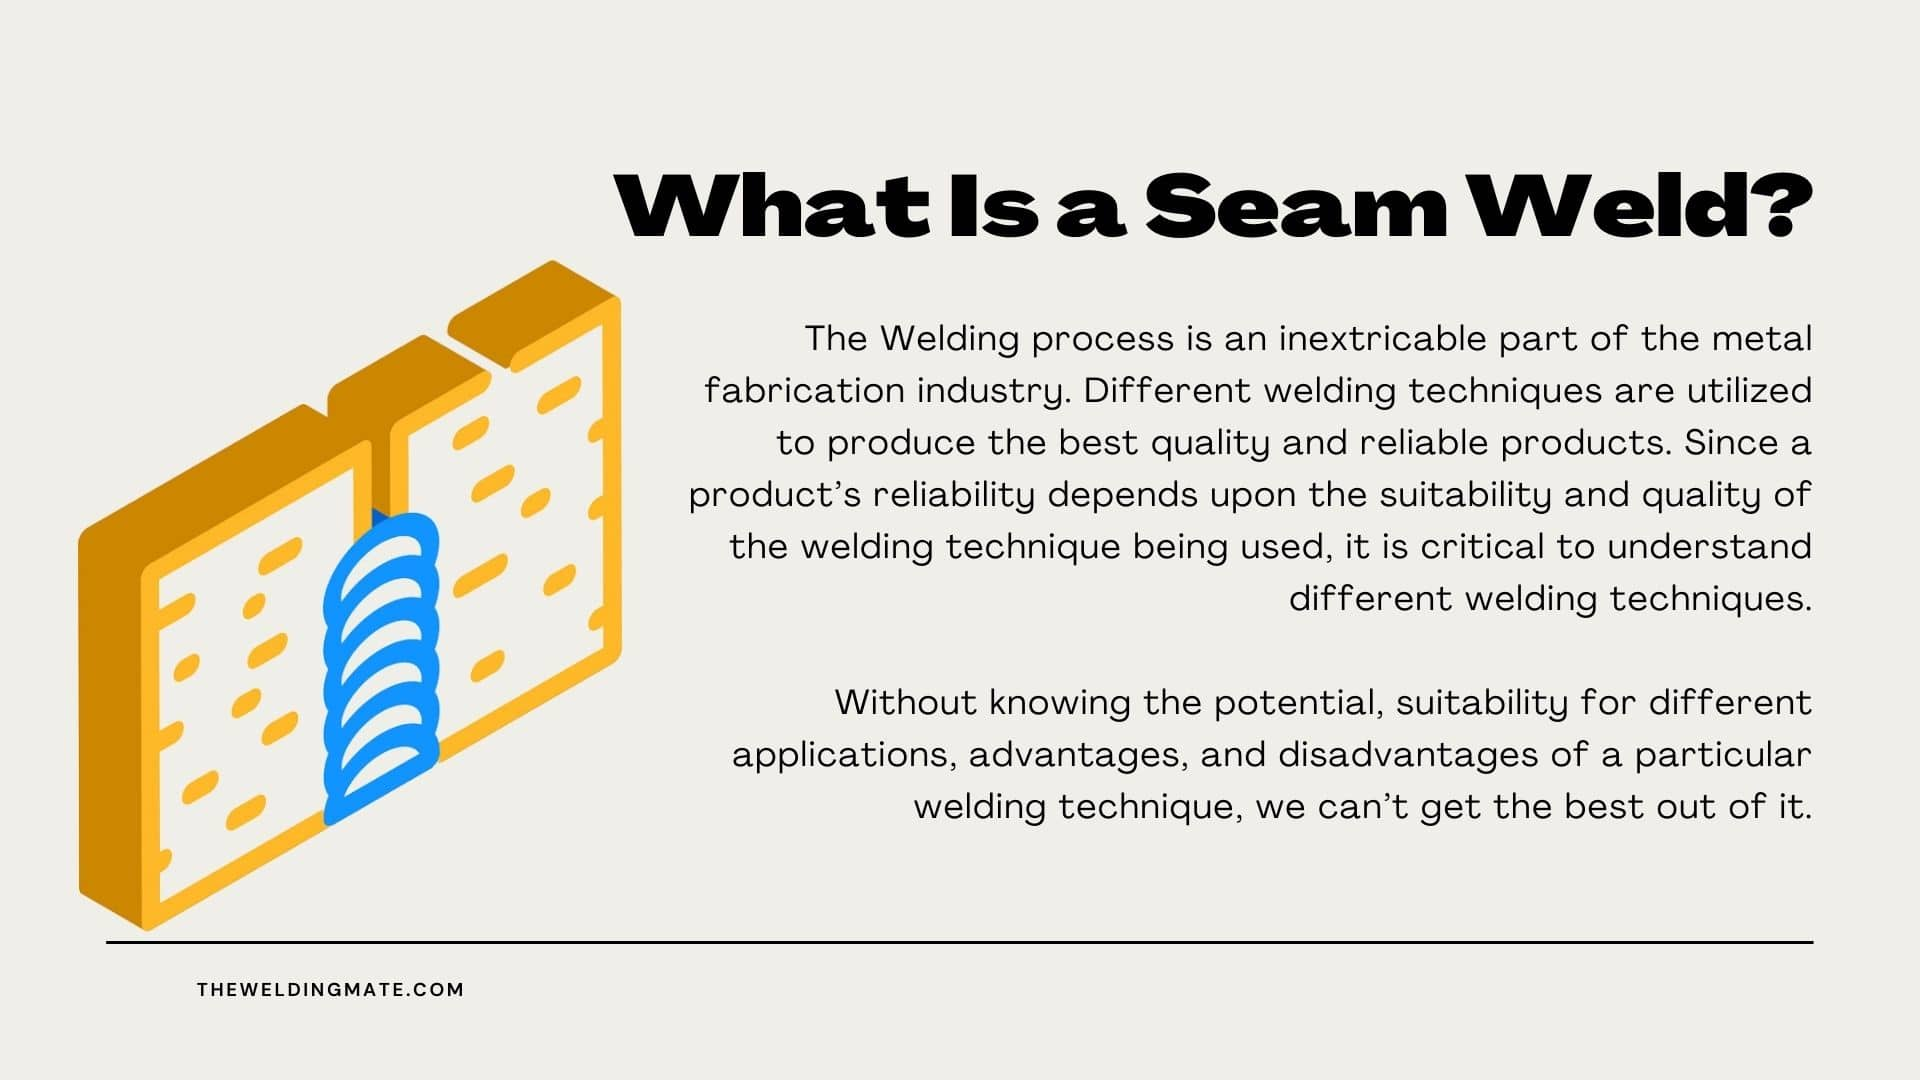 What Is a Seam Weld